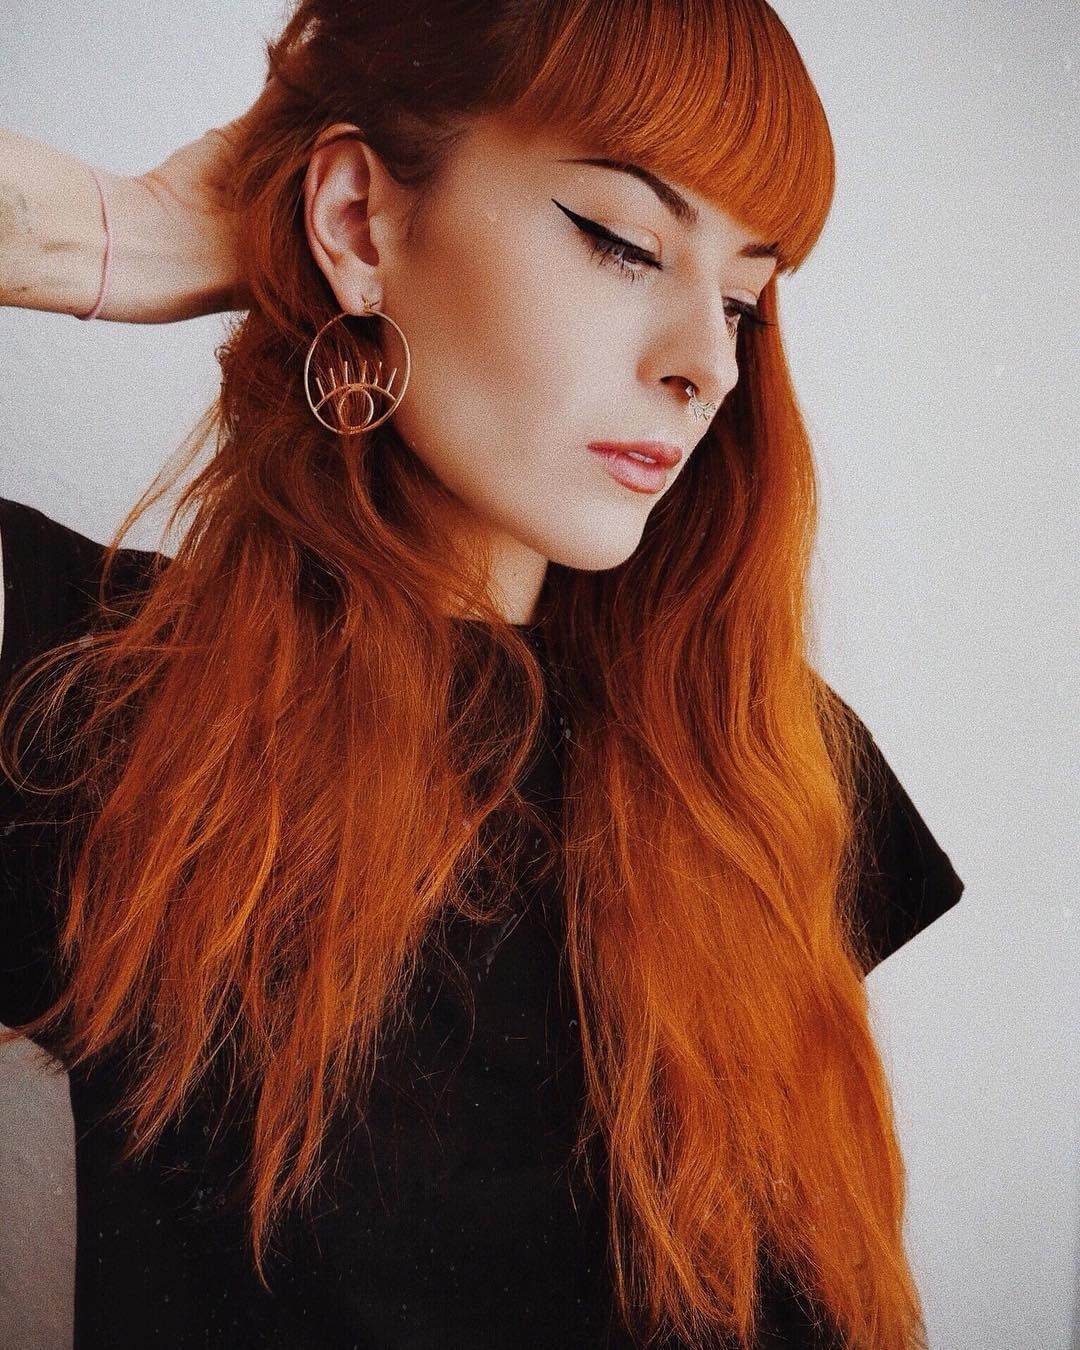 viorosie always give us redhead envy! She uses Sunset